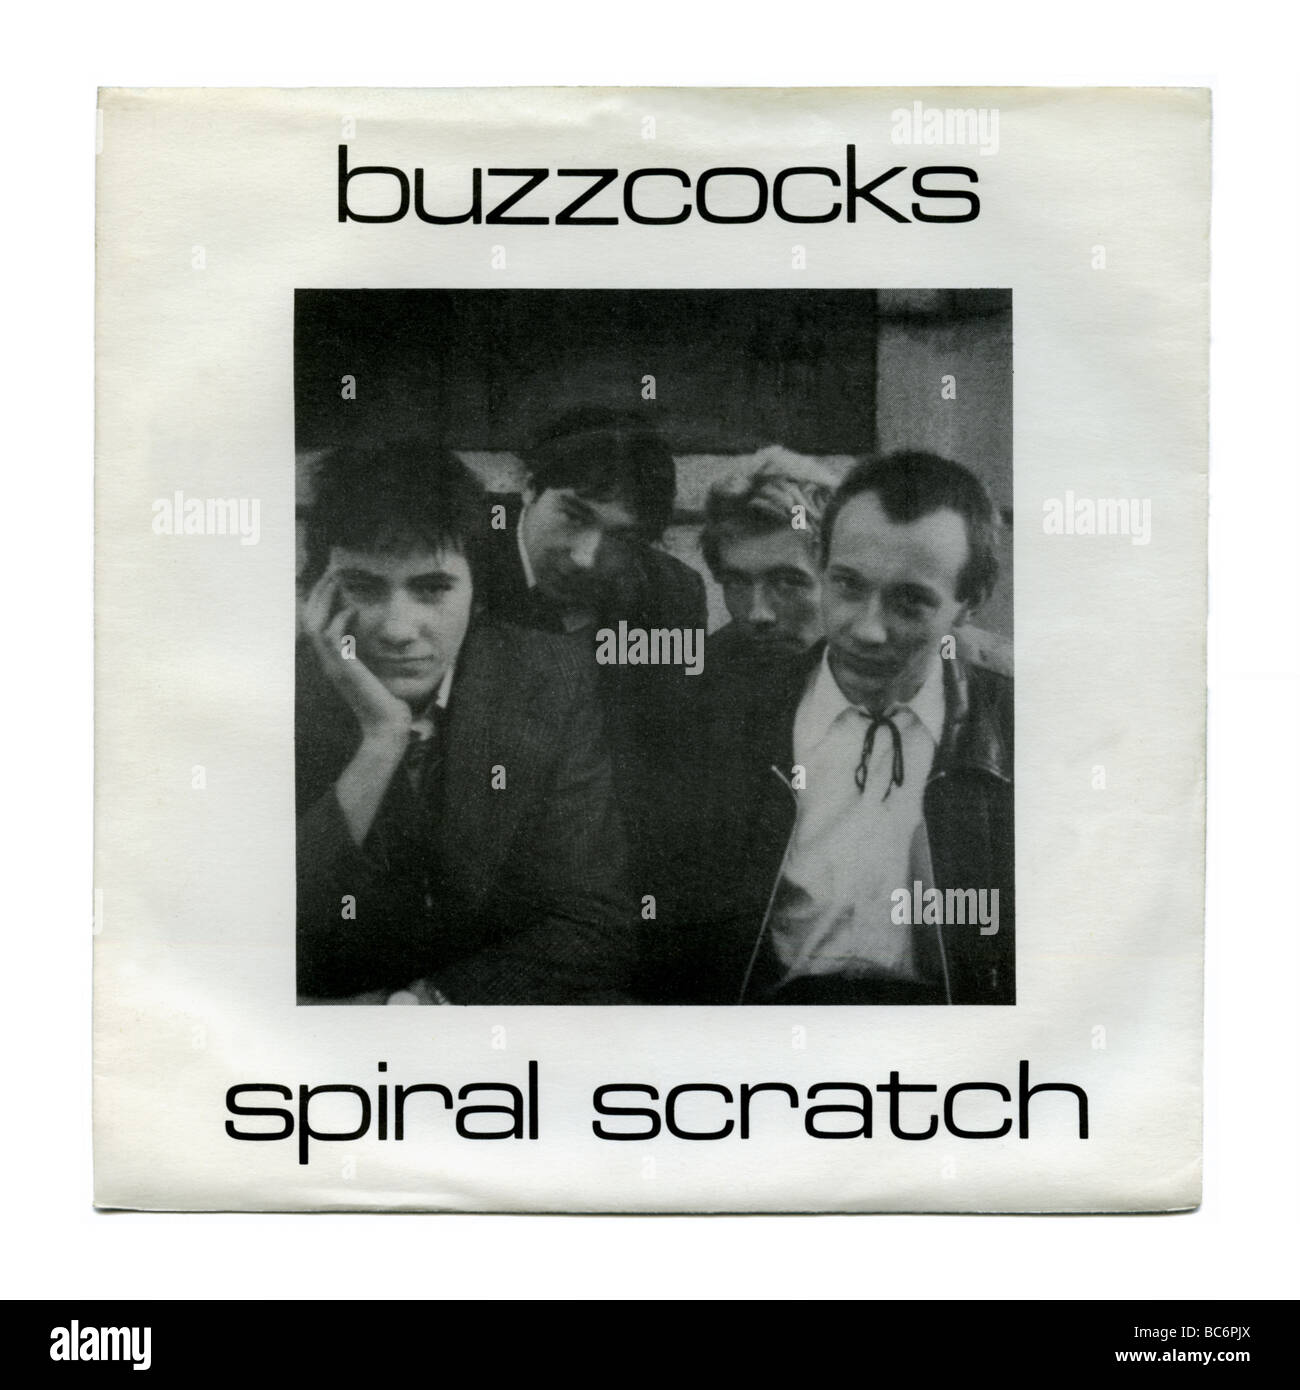 'Spiral Scratch' EP by The Buzzcocks, a punk rock record first released in 1977 - Stock Image